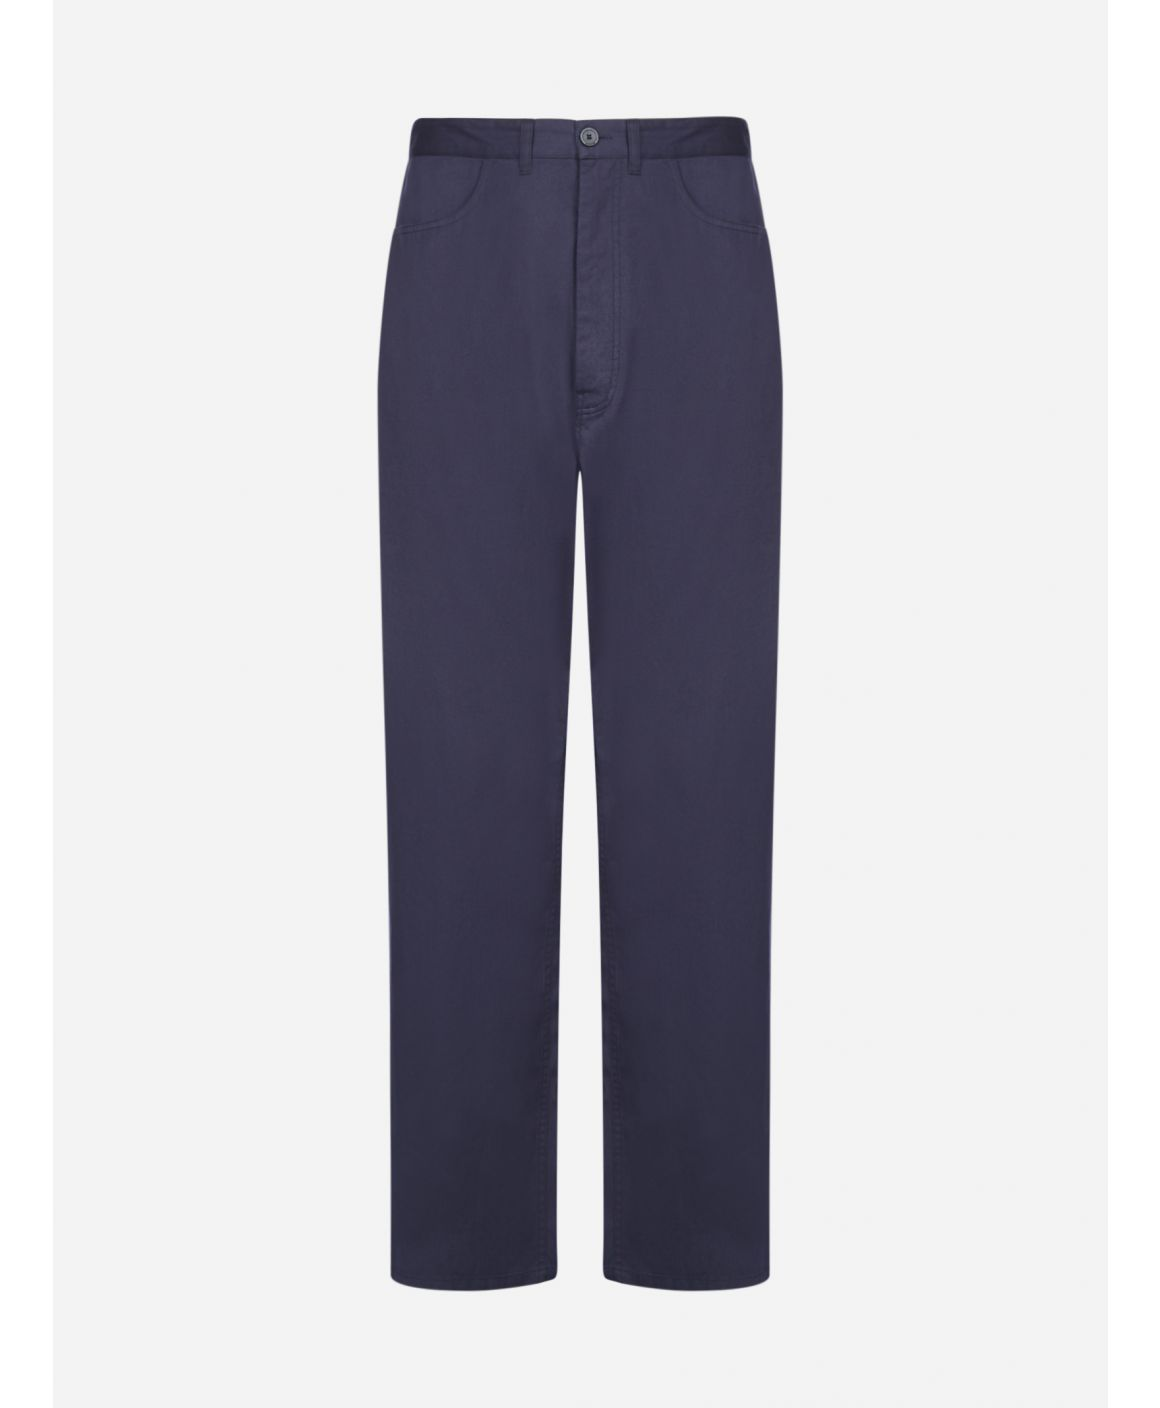 Cotton baggy trousers